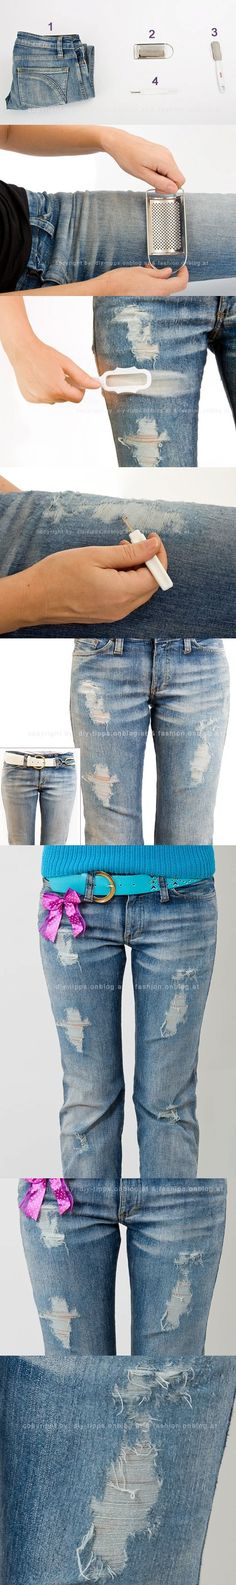 How To : Ripped Jeans